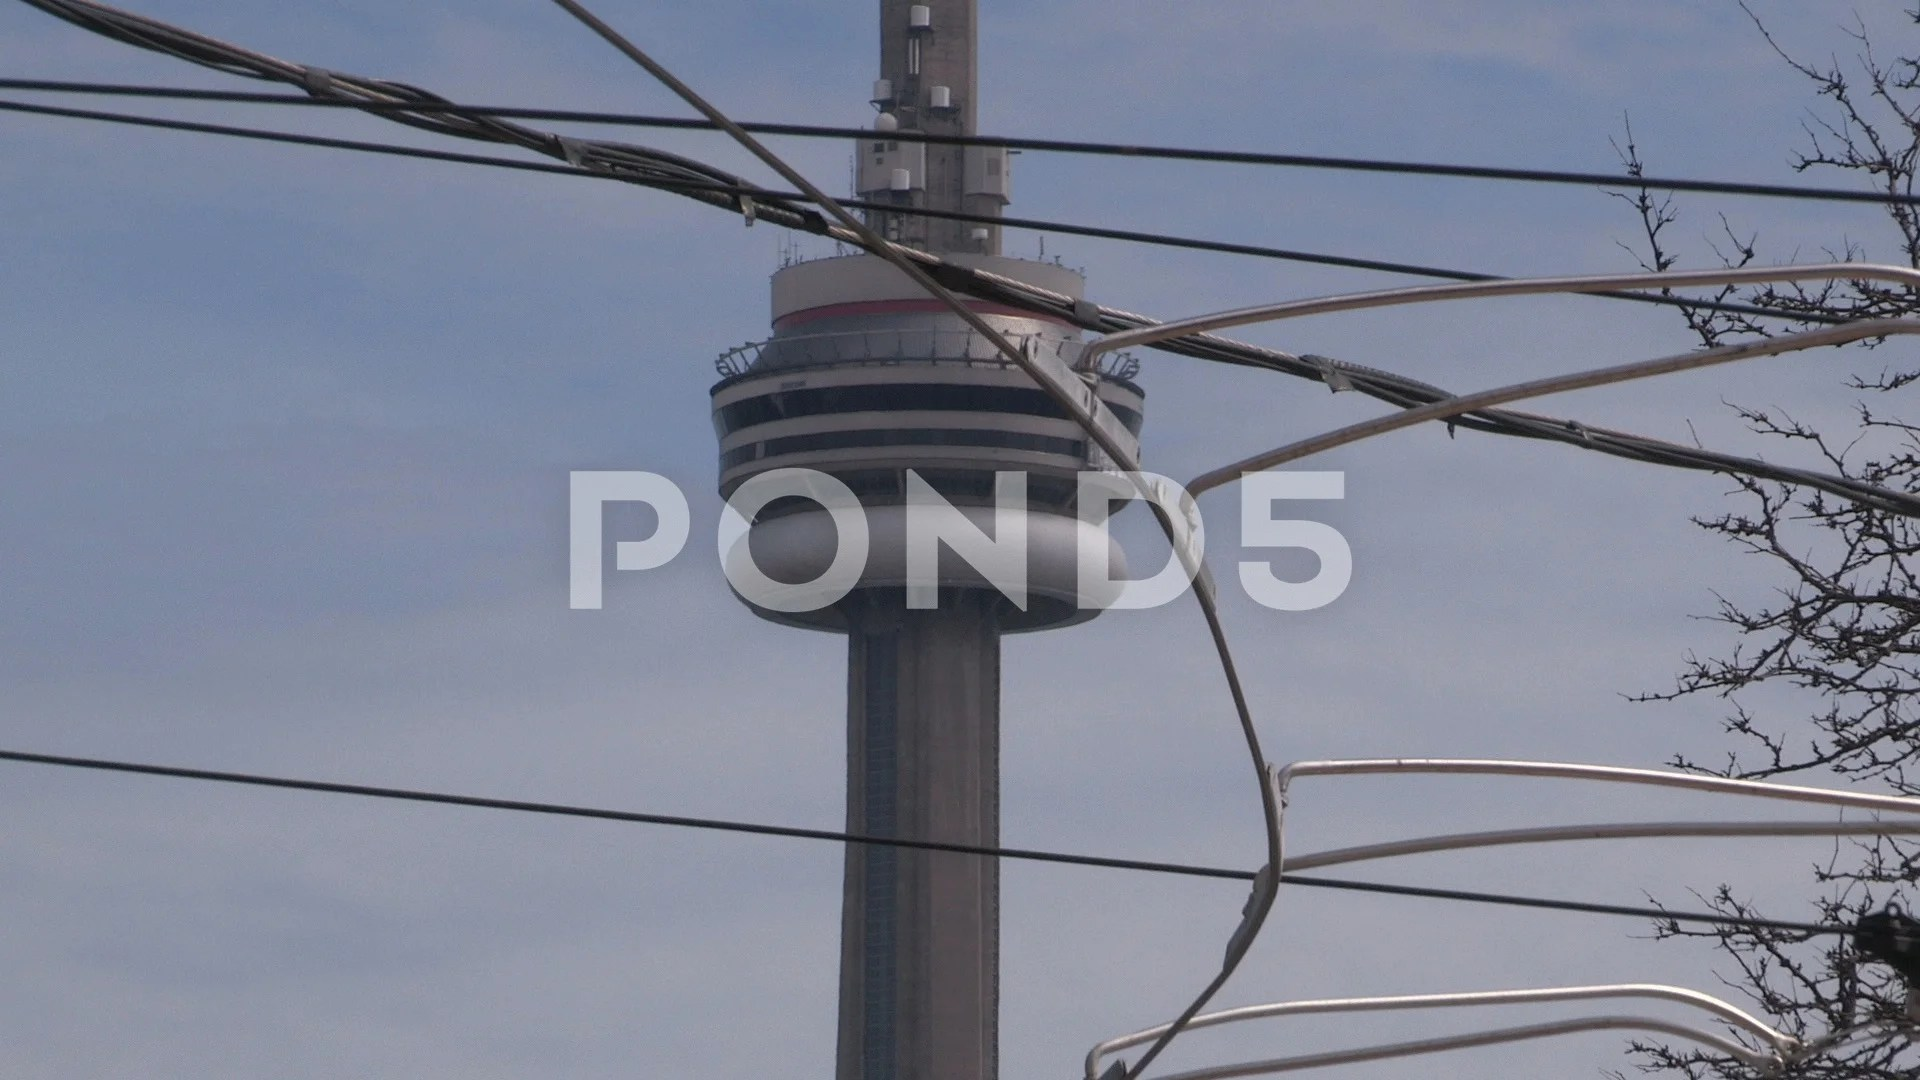 hight resolution of toronto old streetcar wires and cn tower at intersection video 74179050